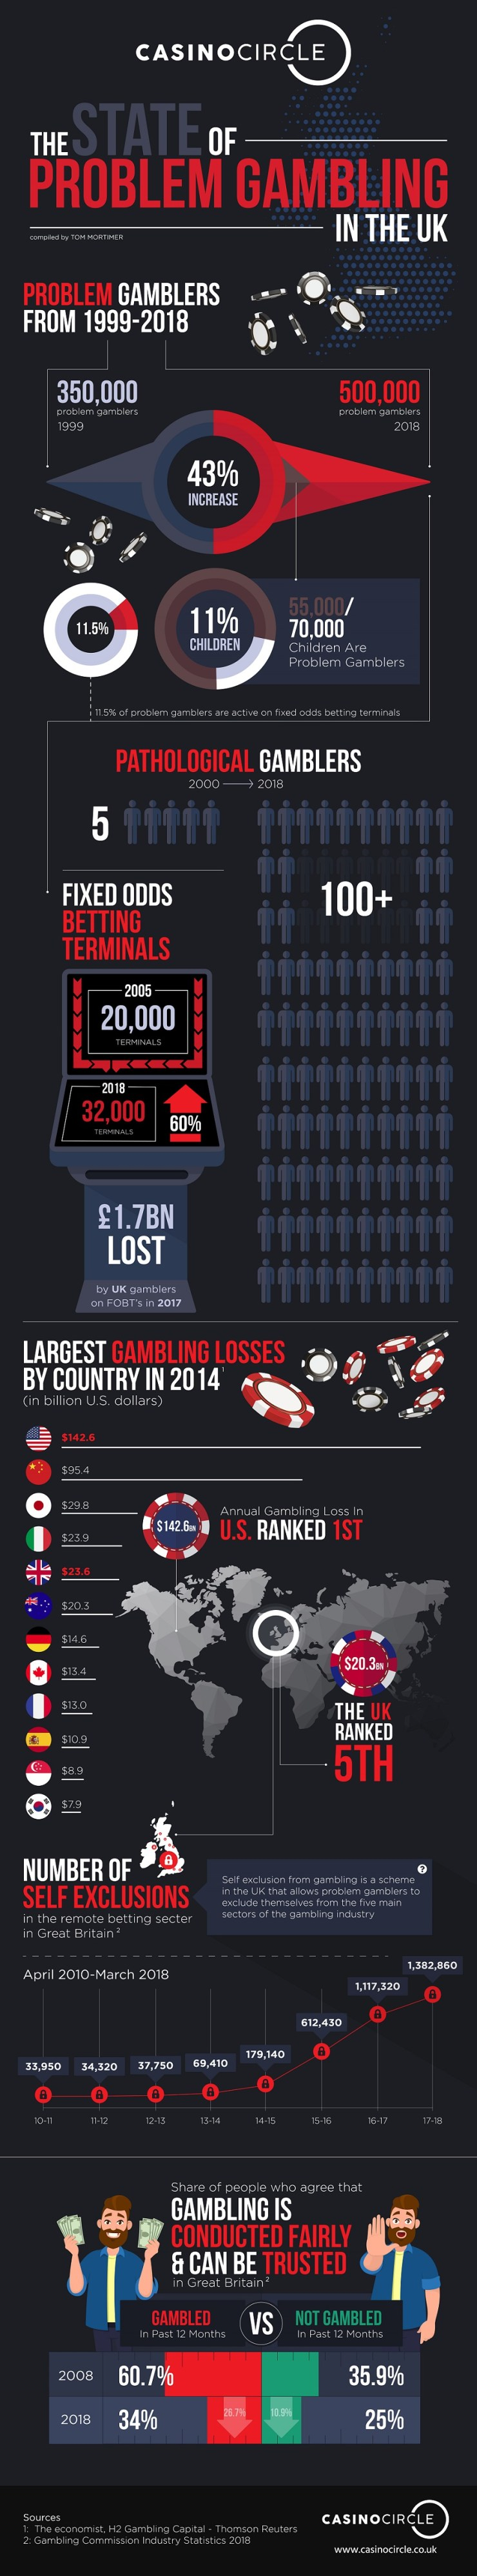 Problem Gambling in the UK